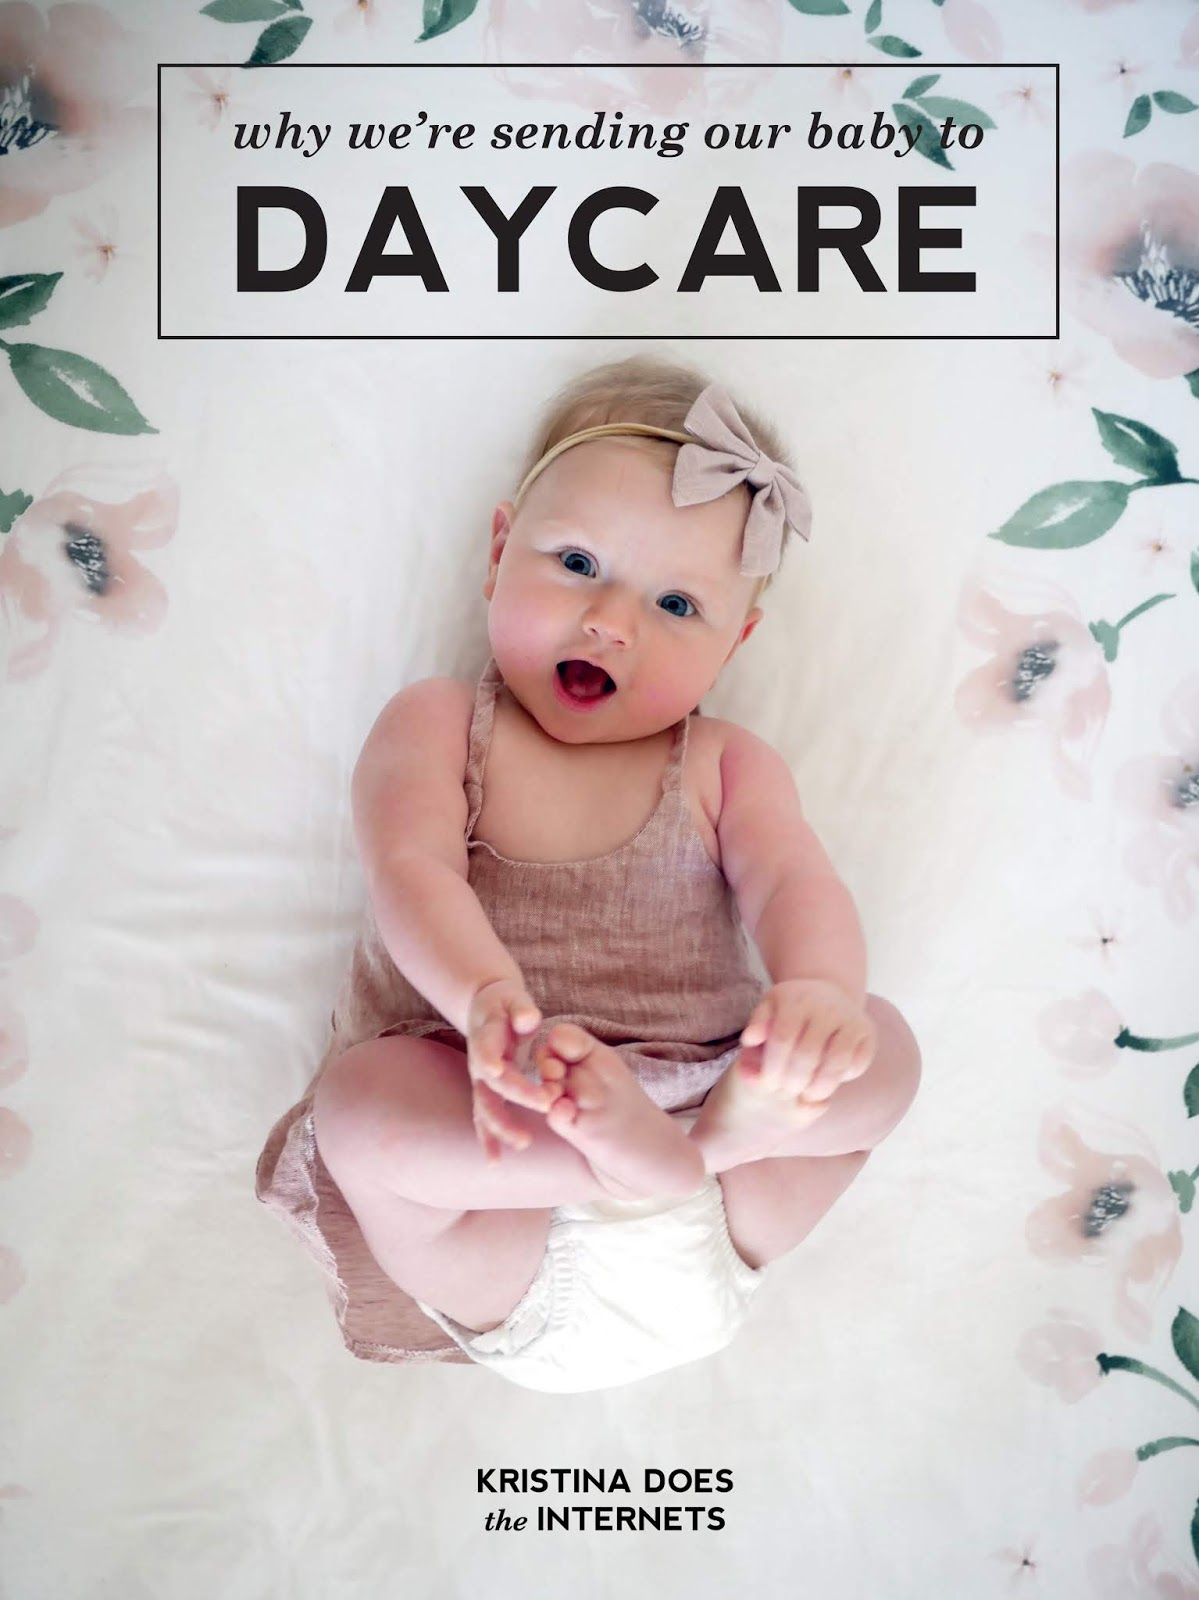 Why we're sending our baby to daycare - Kristina does the Internets